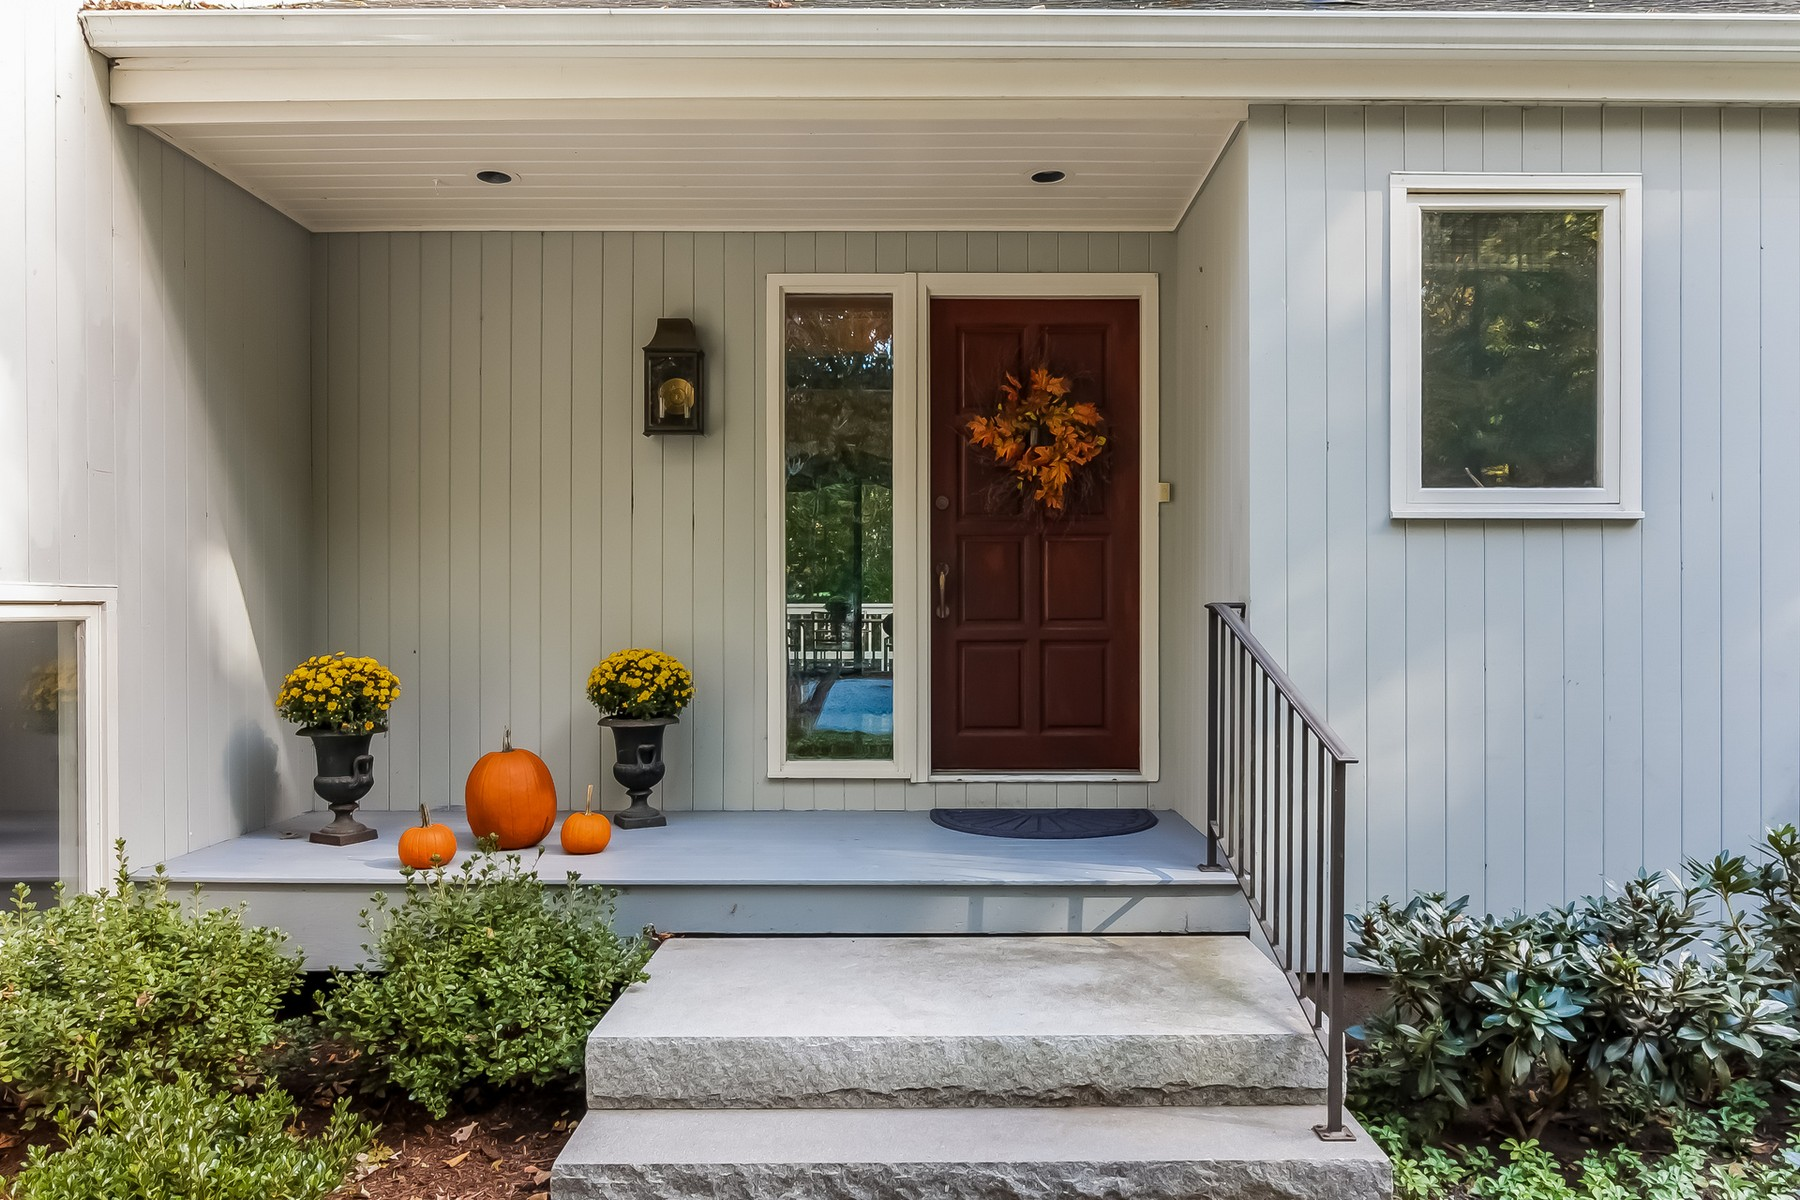 open-houses property at Charm, Location, Move-In Condition!